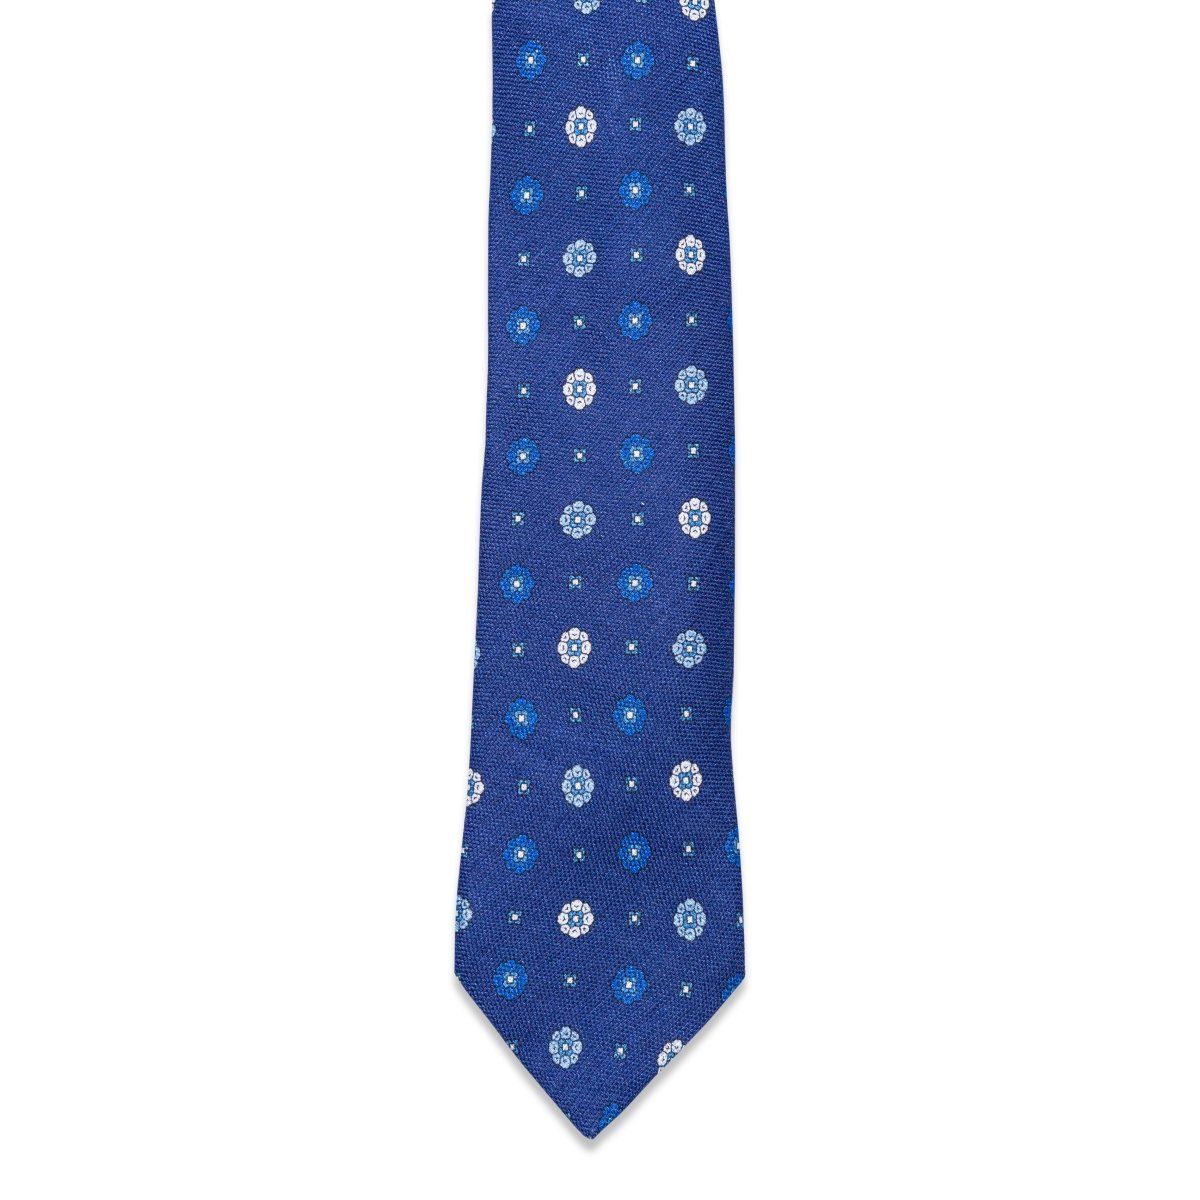 Drake's - Das, Blue Flowers, Dassen | NEW TAILOR Webshop